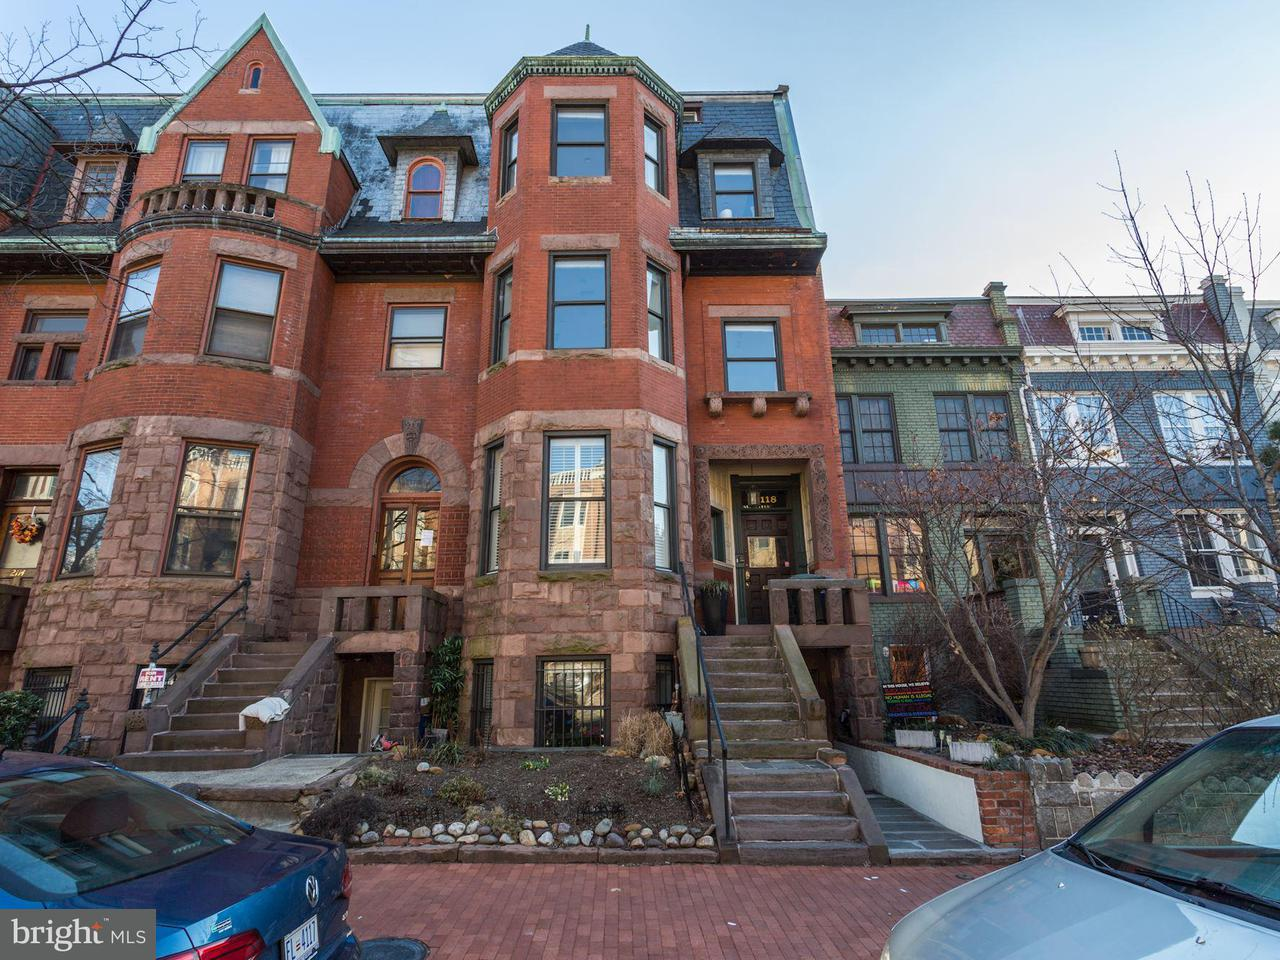 Townhouse for Sale at 2118 O St Nw #C 2118 O St Nw #C Washington, District Of Columbia 20037 United States